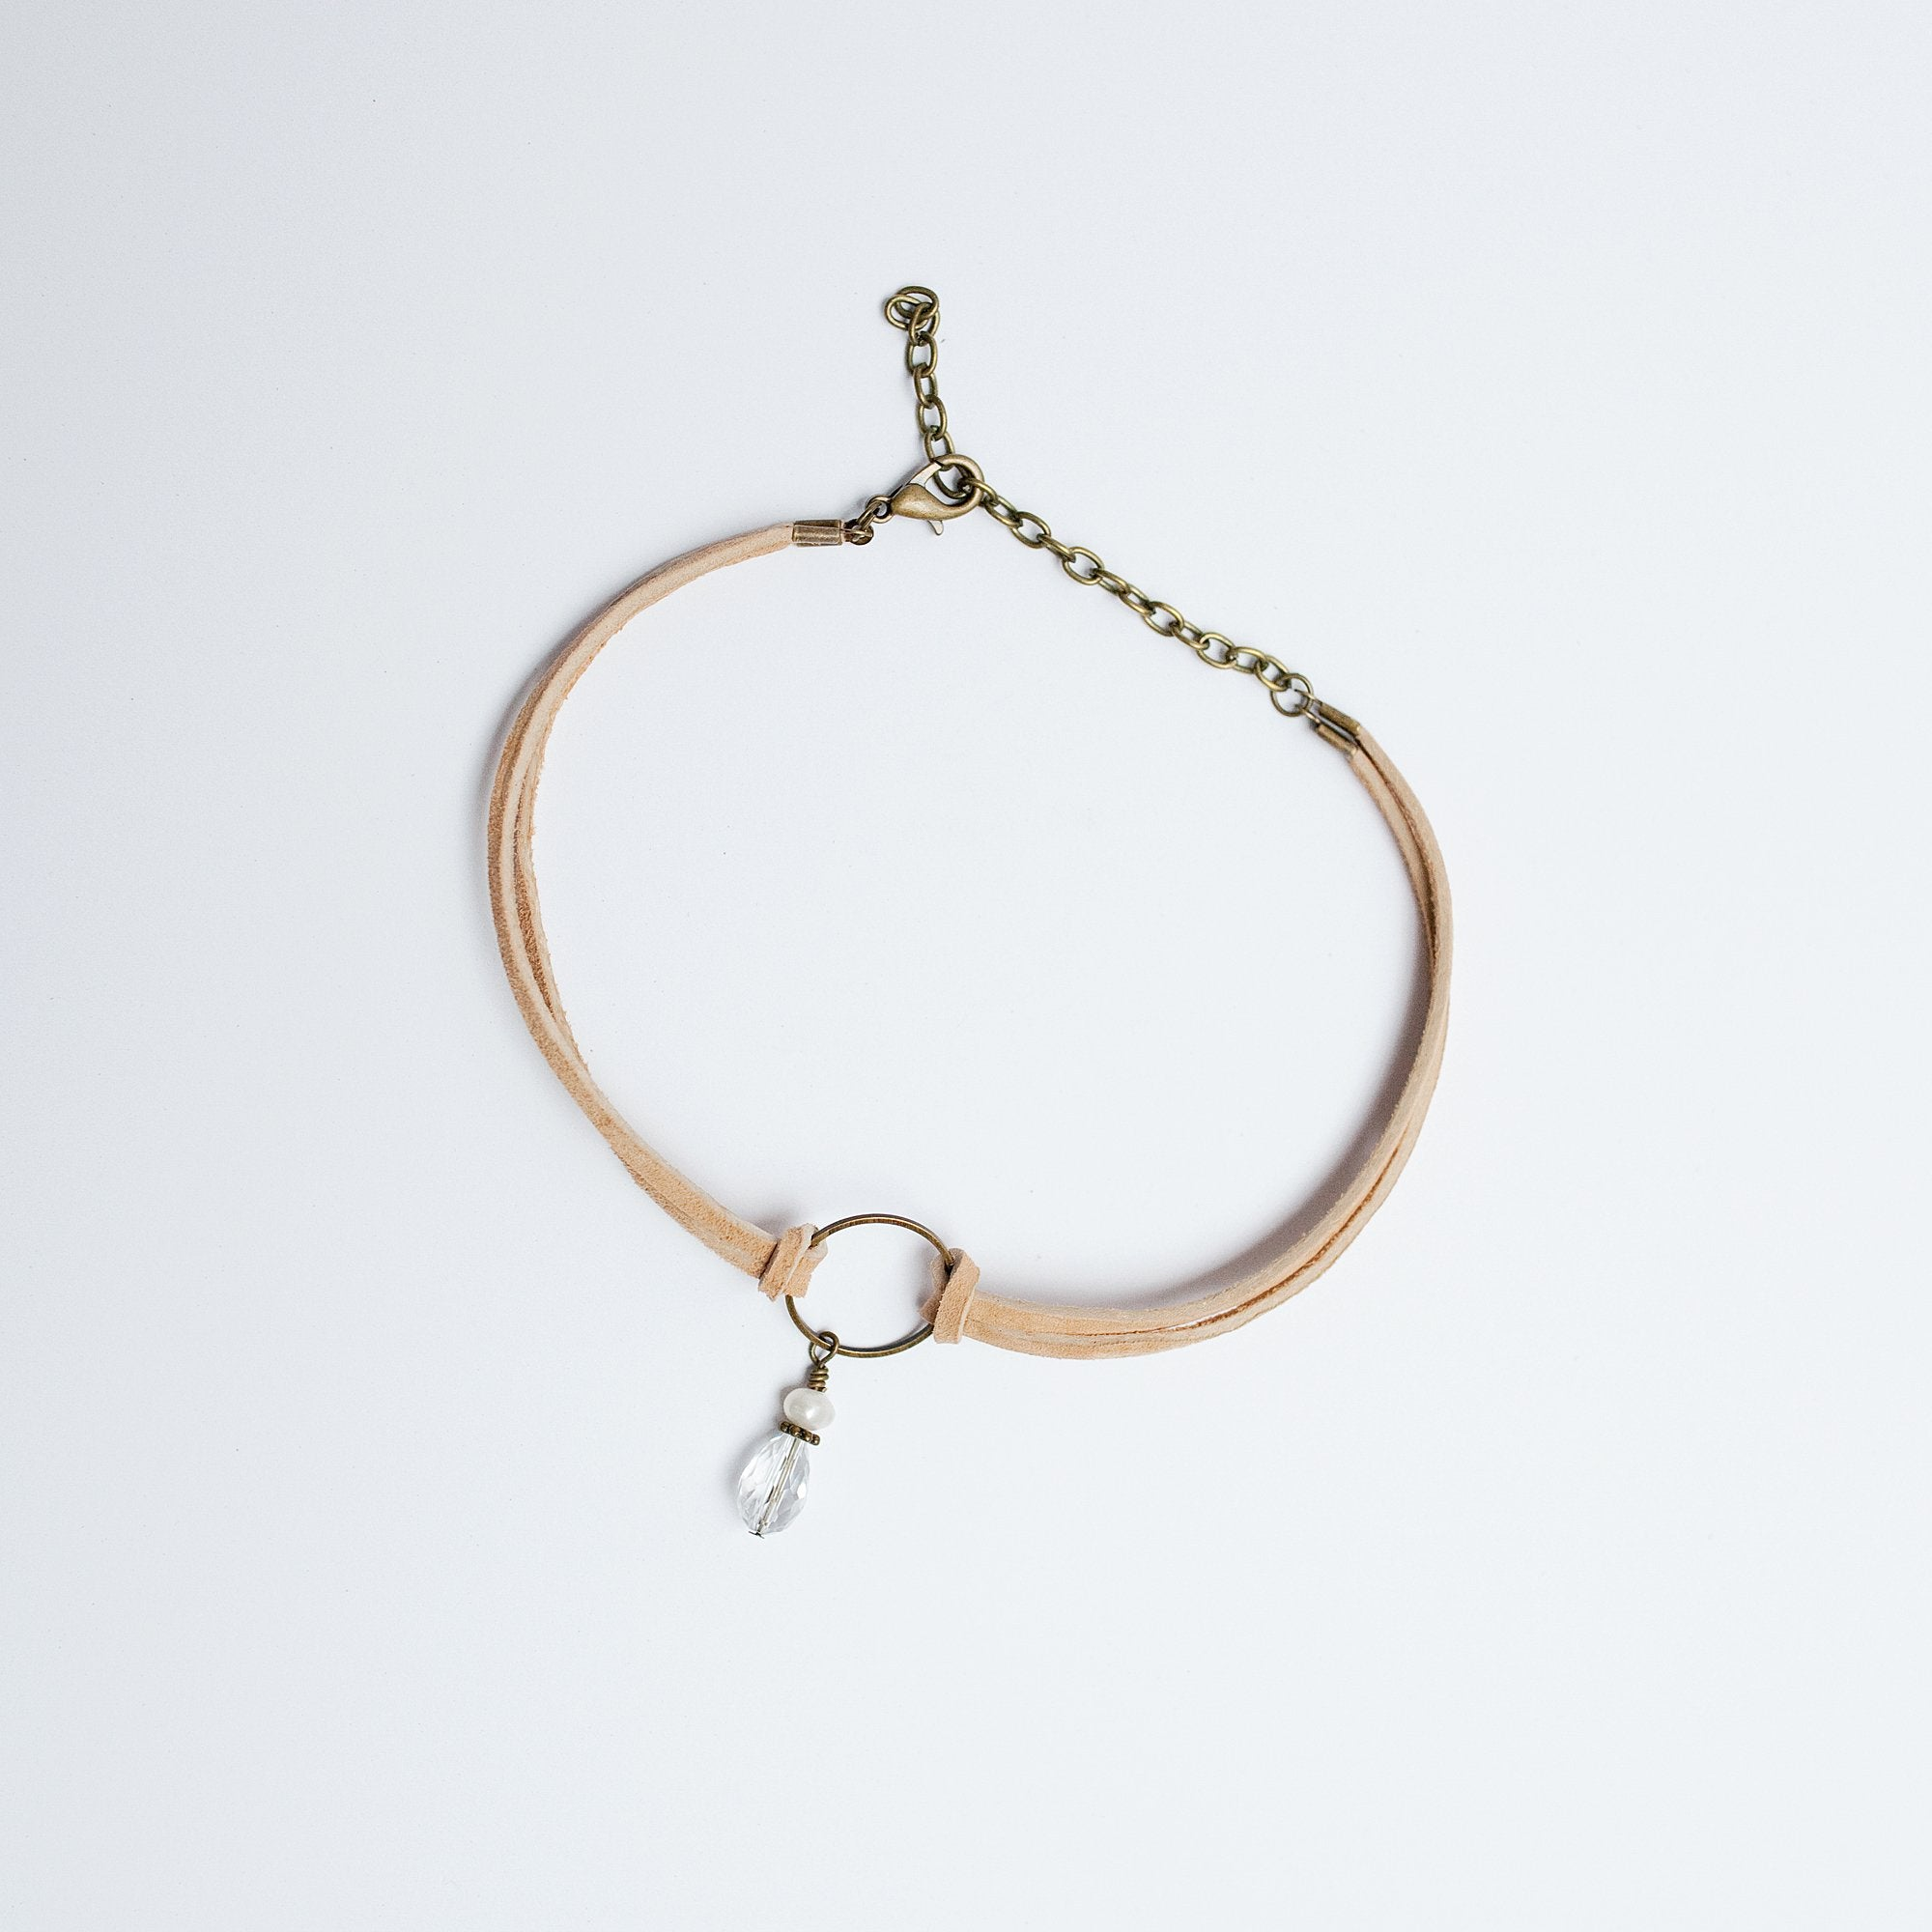 Double Knotted Suede Choker with Beaded Ring Pendant - Newport Edge